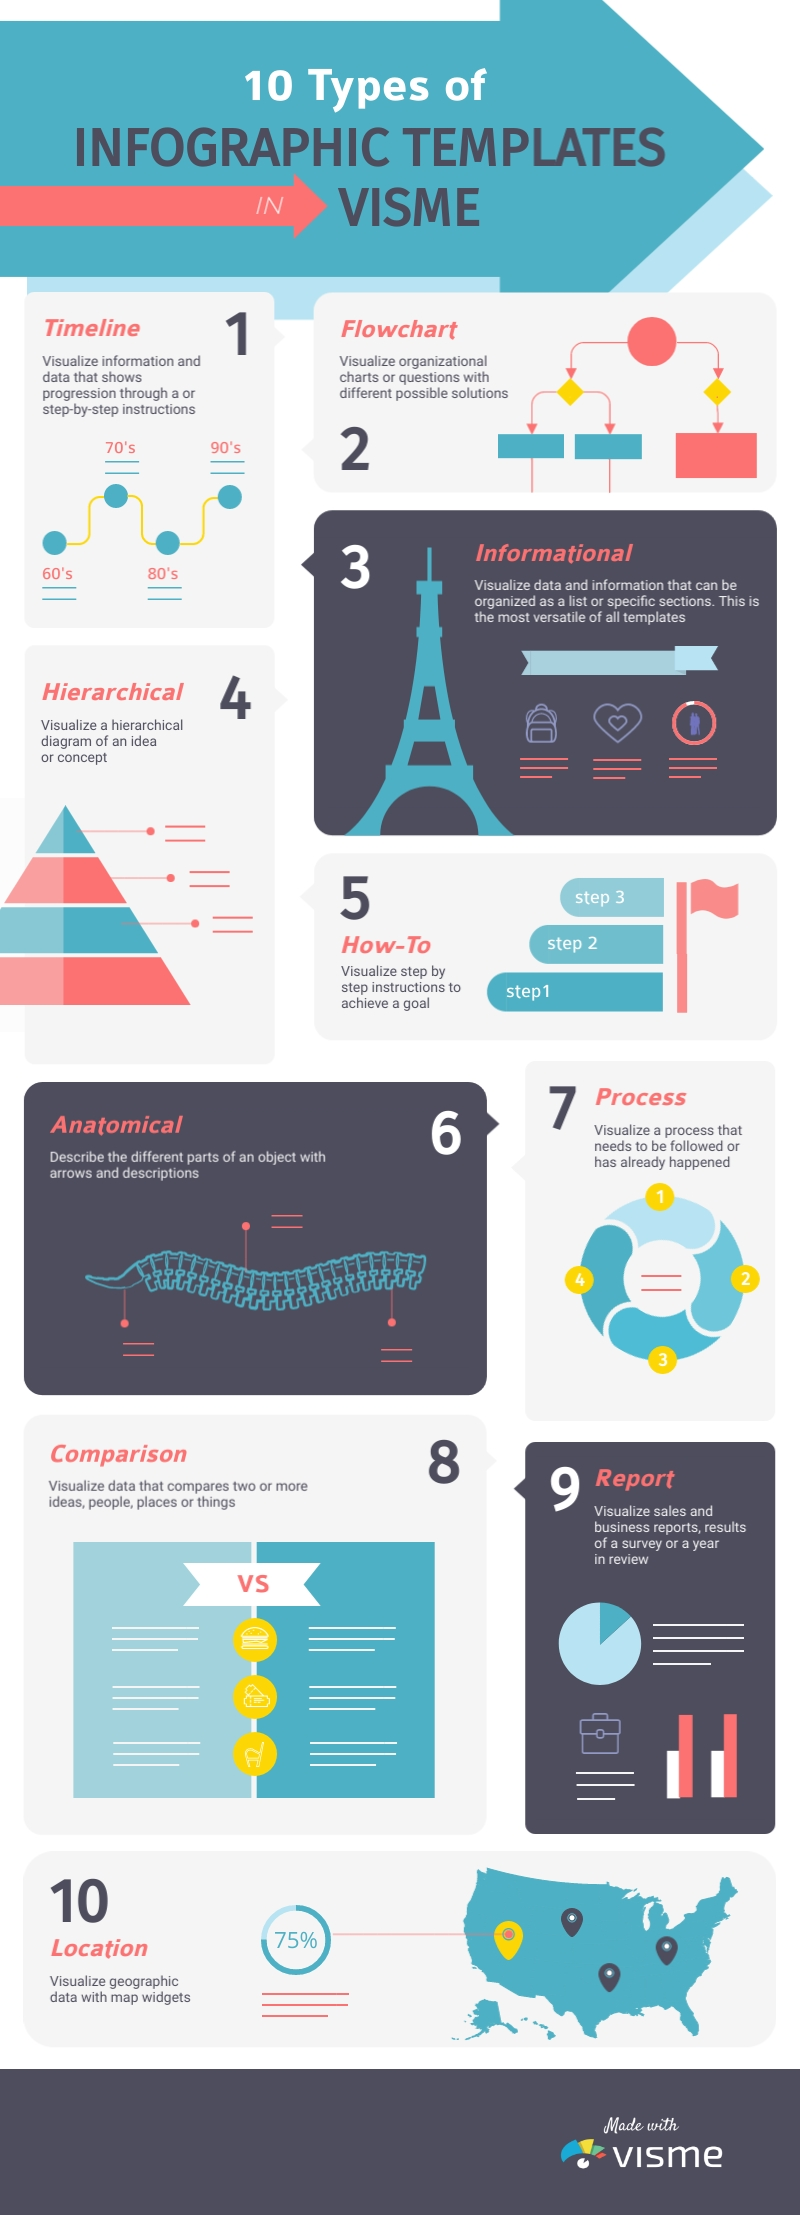 10 Types of Infographic Templates in Visme Infographic